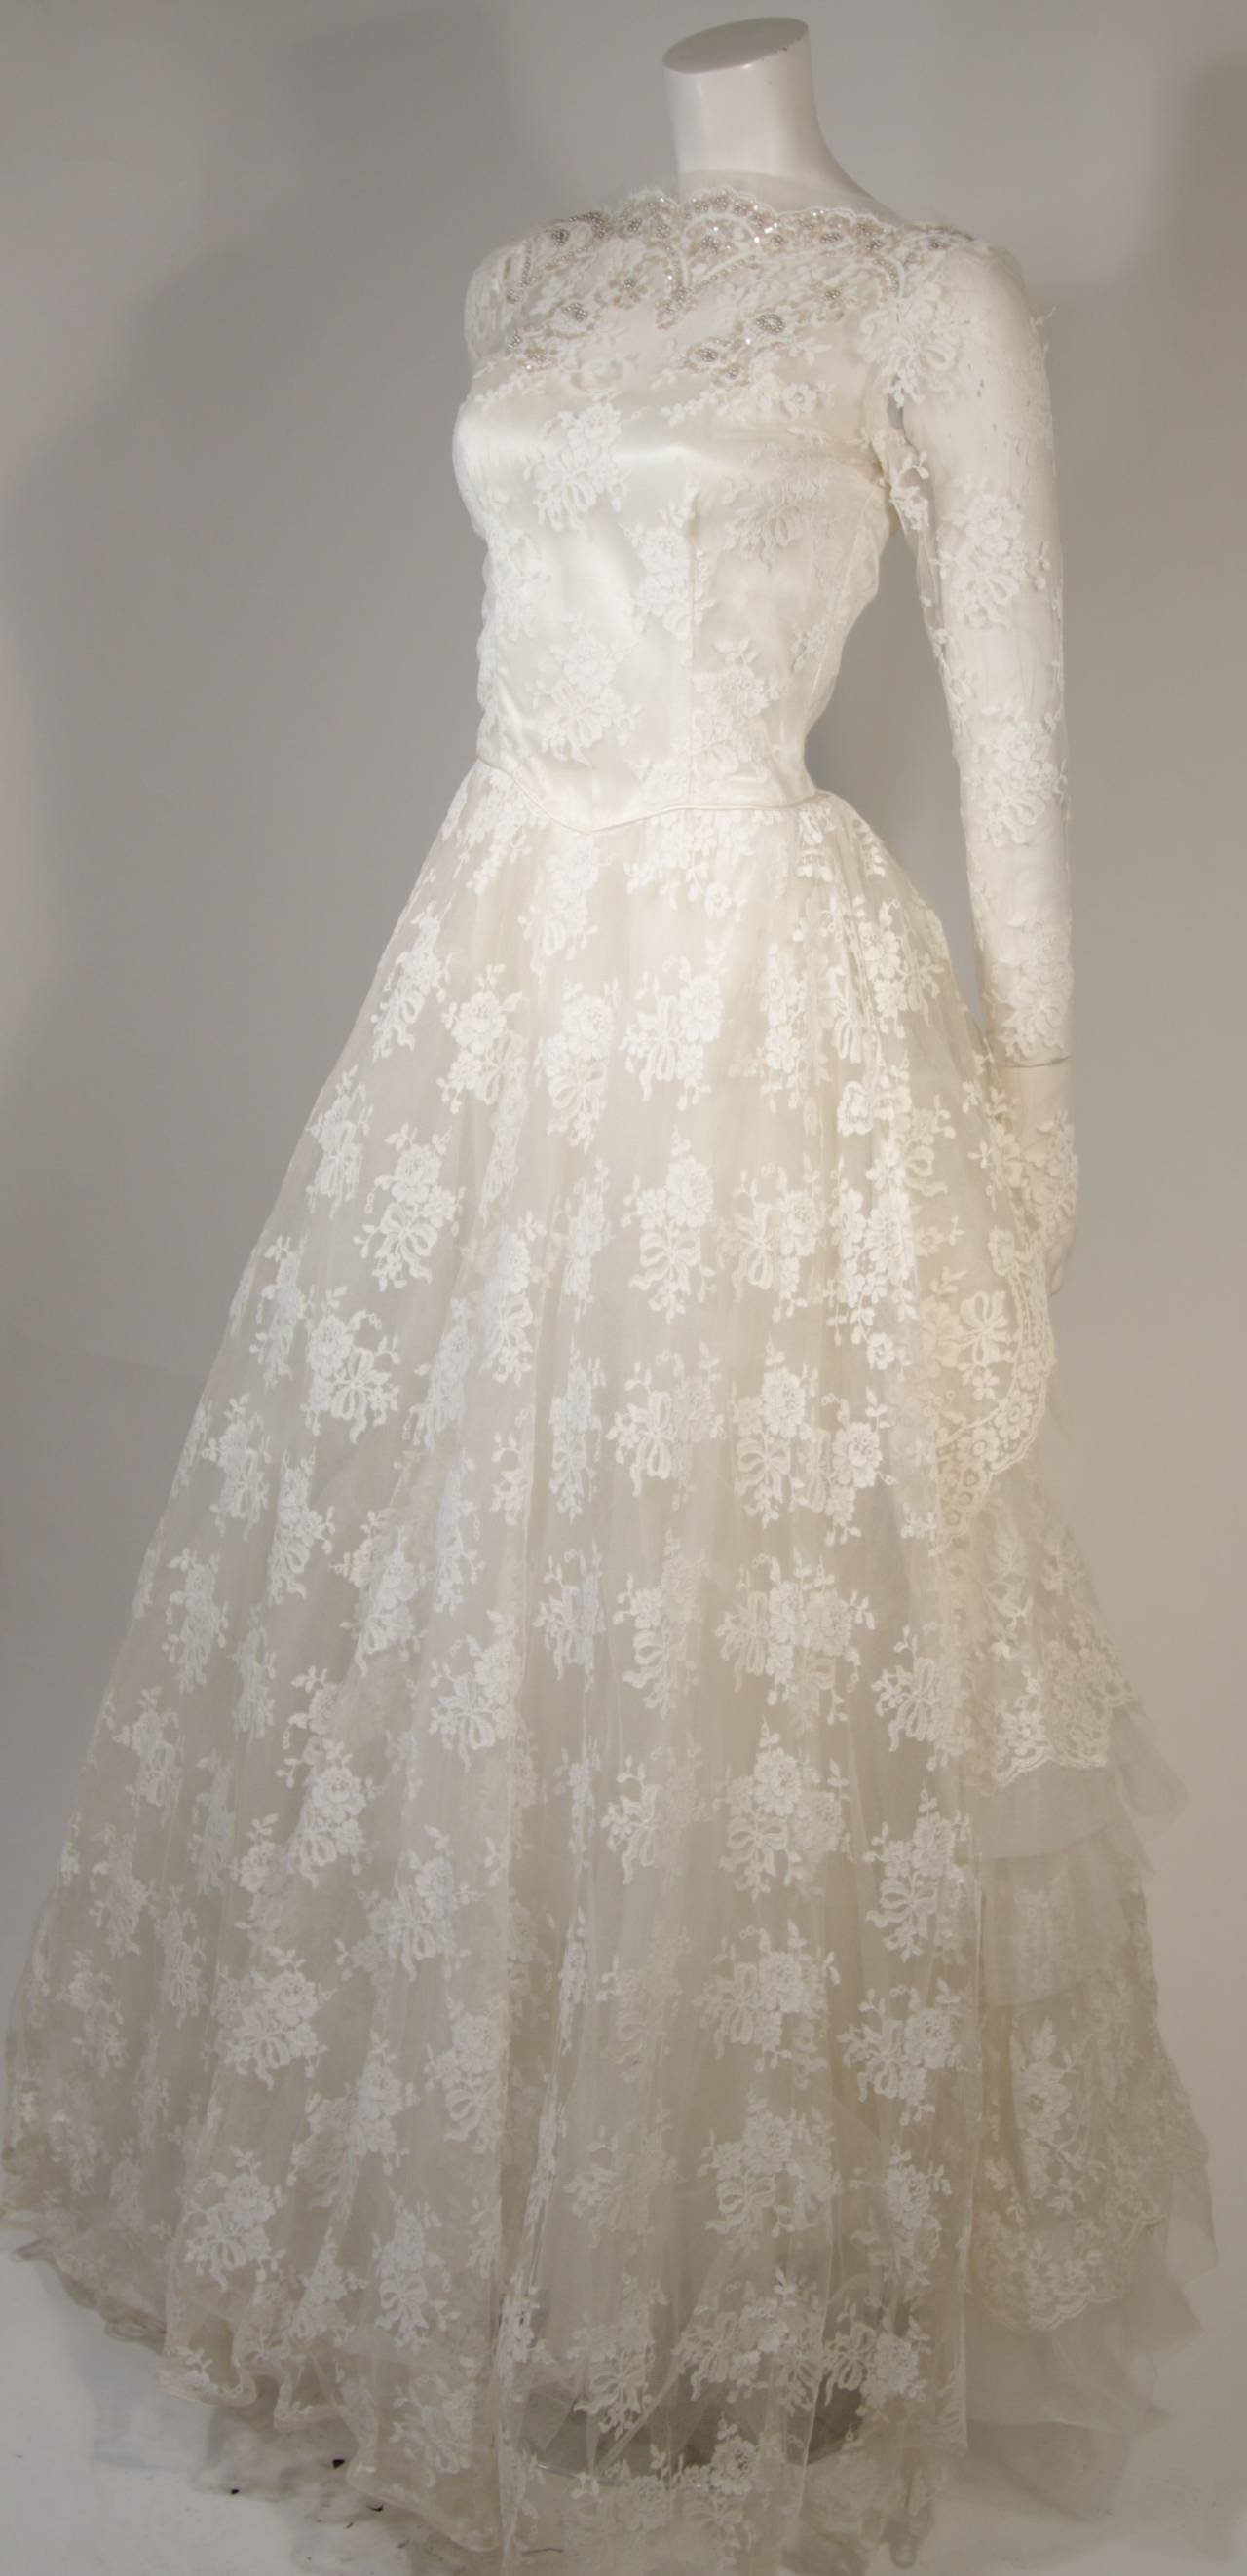 Vintage Lace Wedding Gown with Scalloped Edges and Long Sleeves Size Small 2